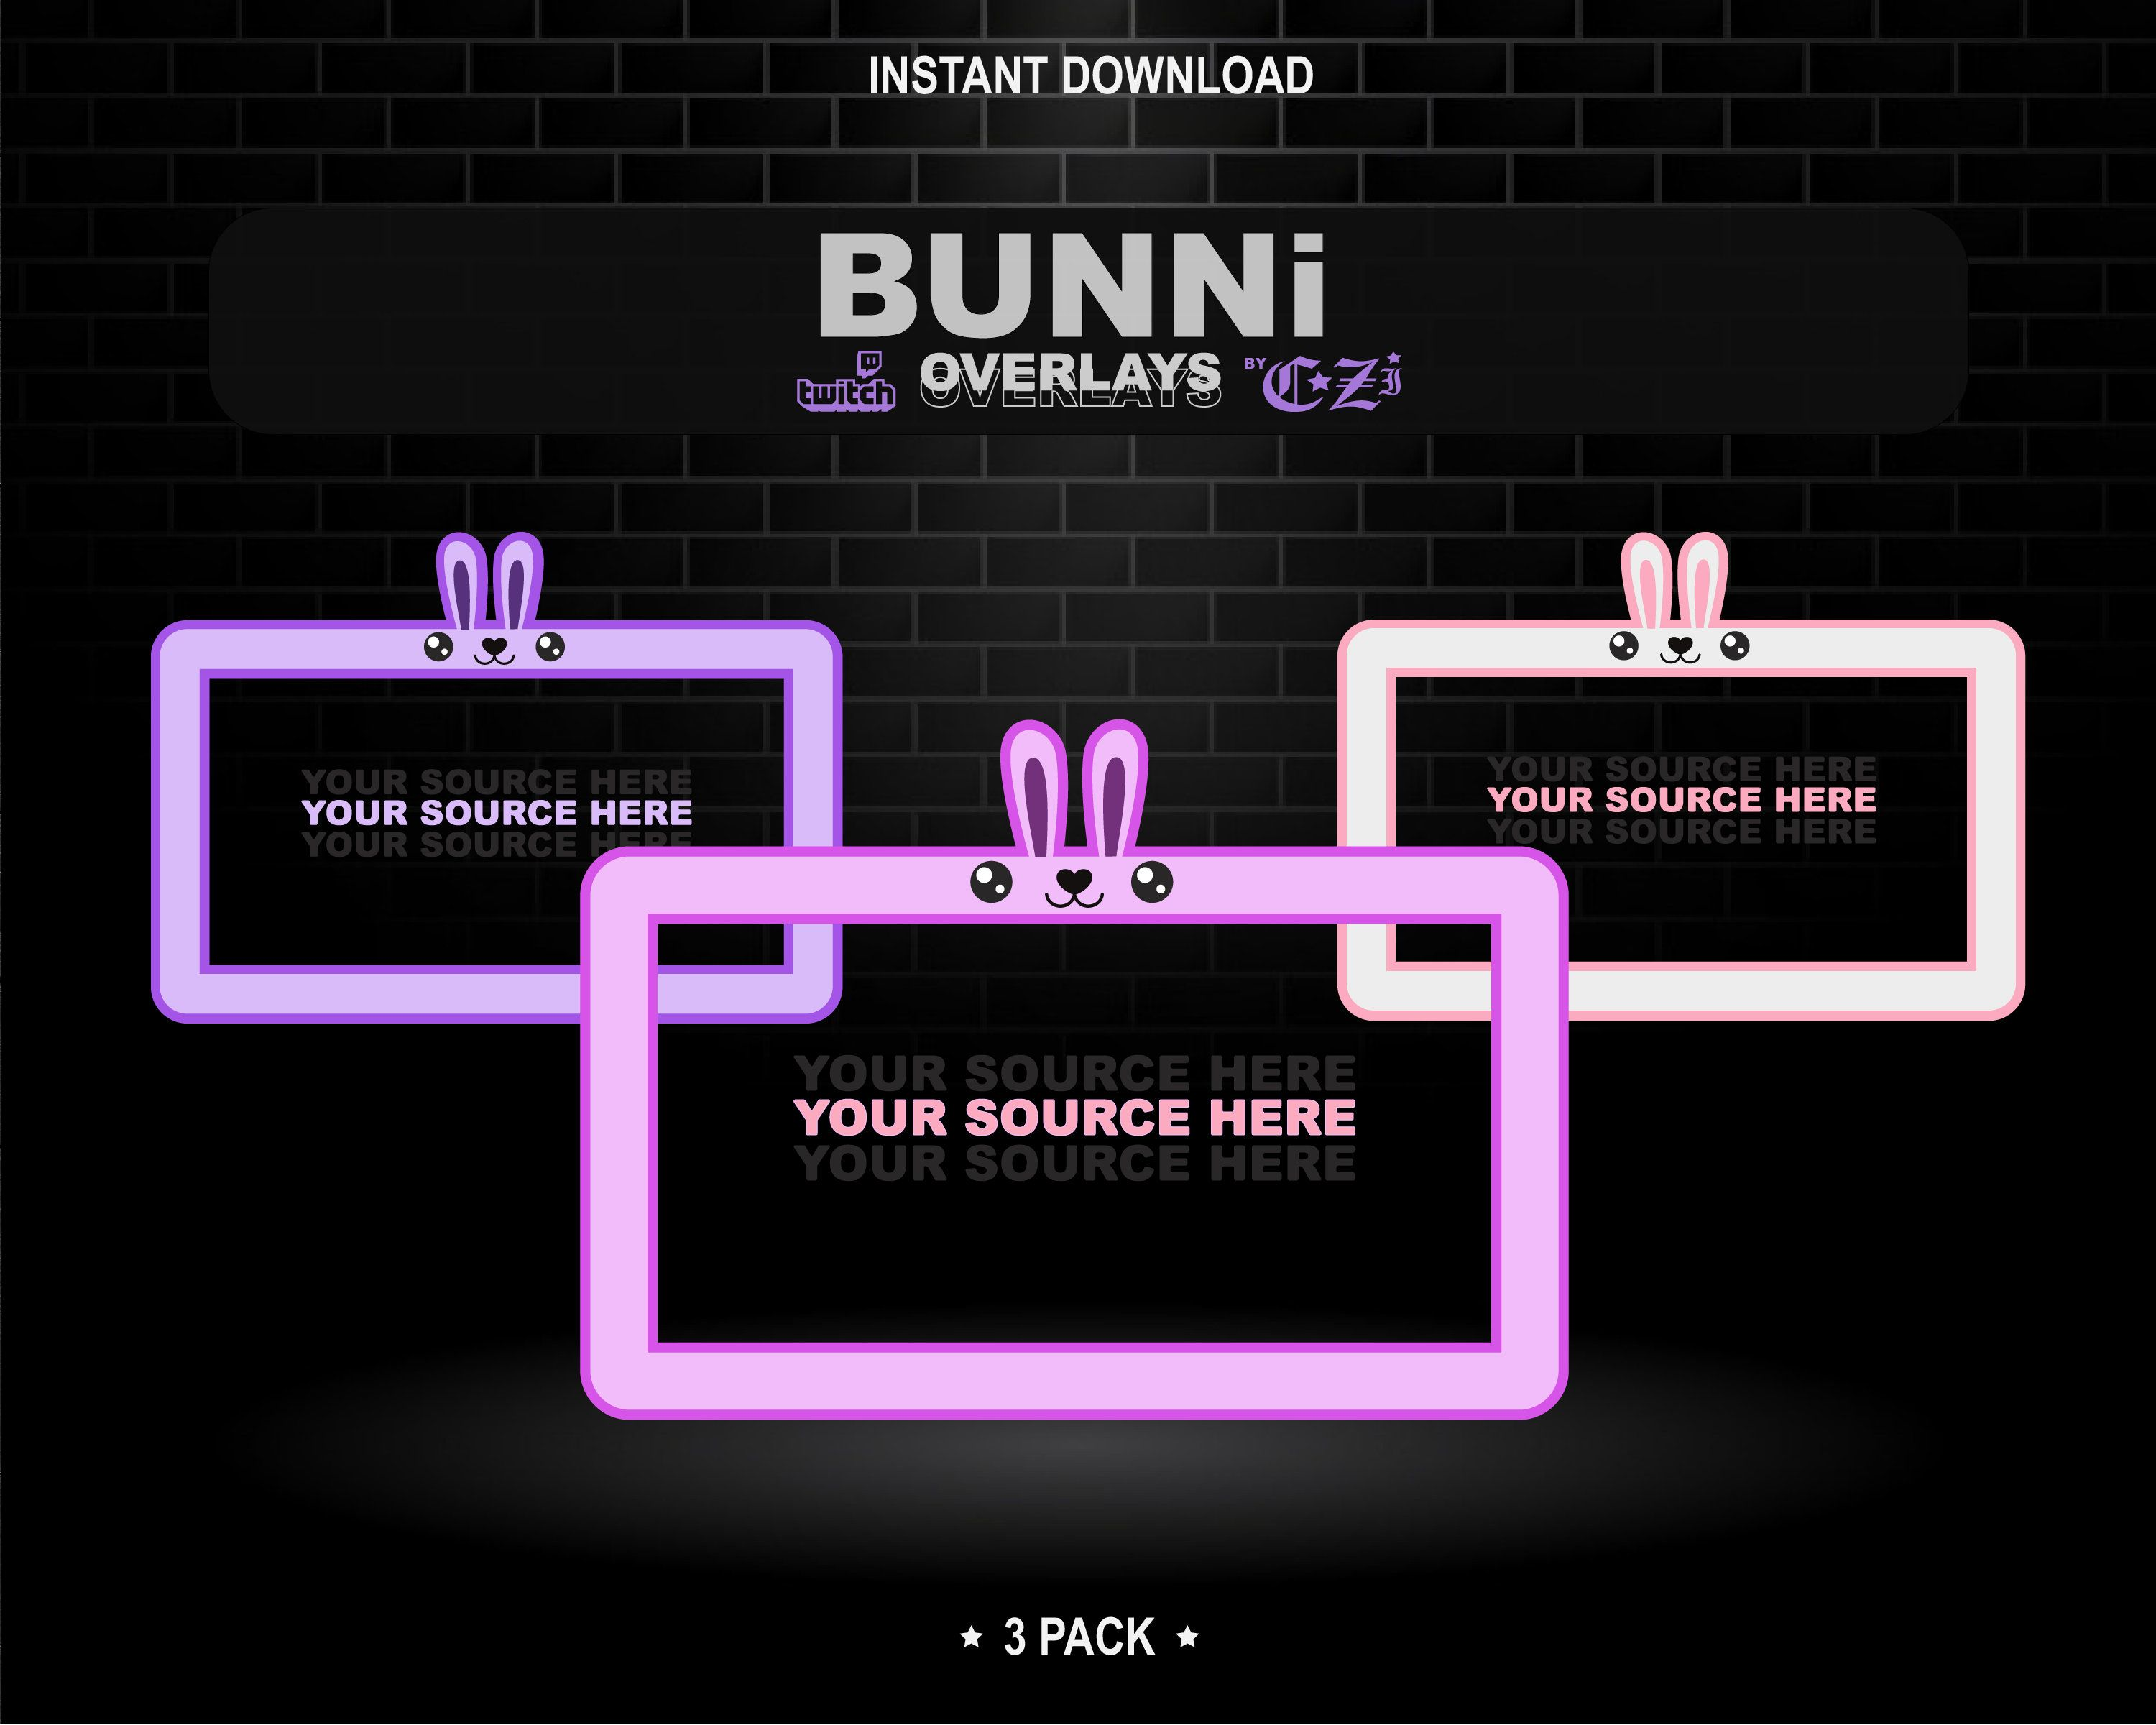 Bunni Twitch Overlays Etsy In 2021 Overlays Twitch Twitch Streaming Setup